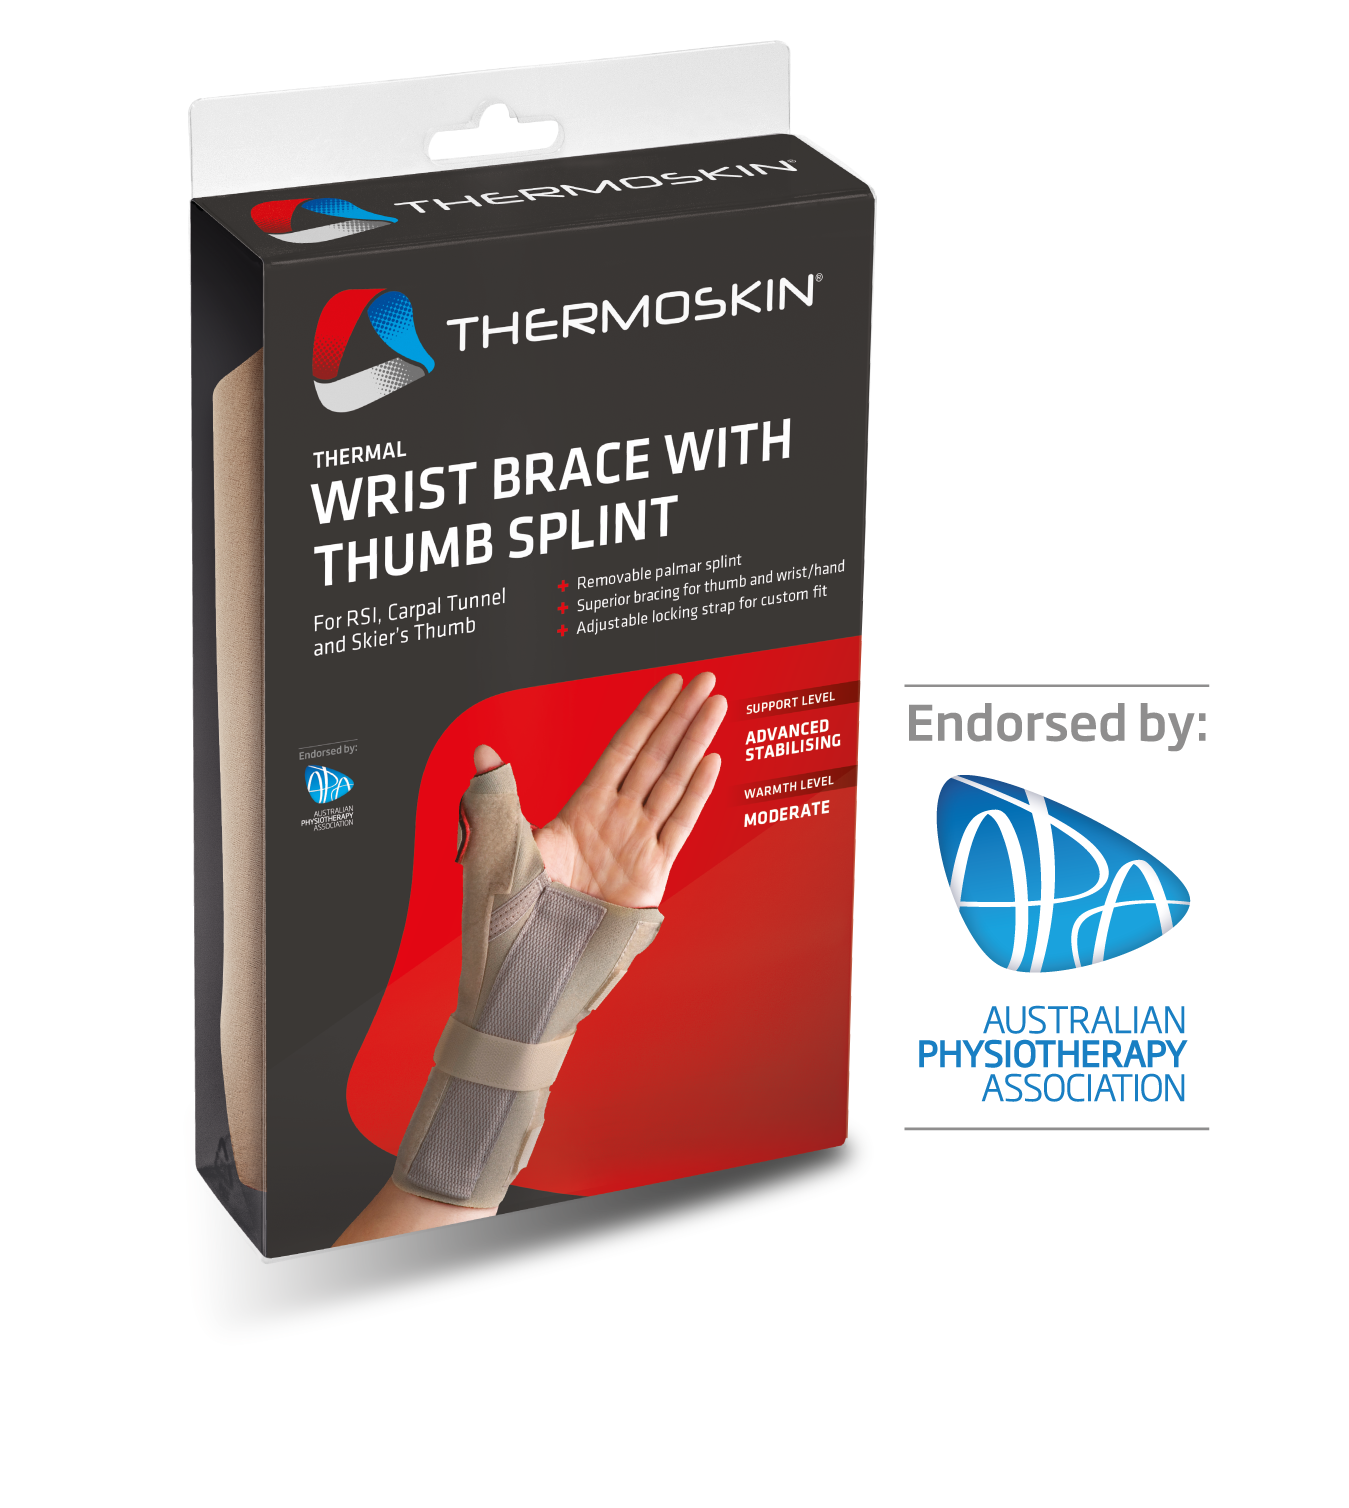 Thermoskin Thermal Wrist Brace with Thumb Splint - Left 8*238 Right 8*239